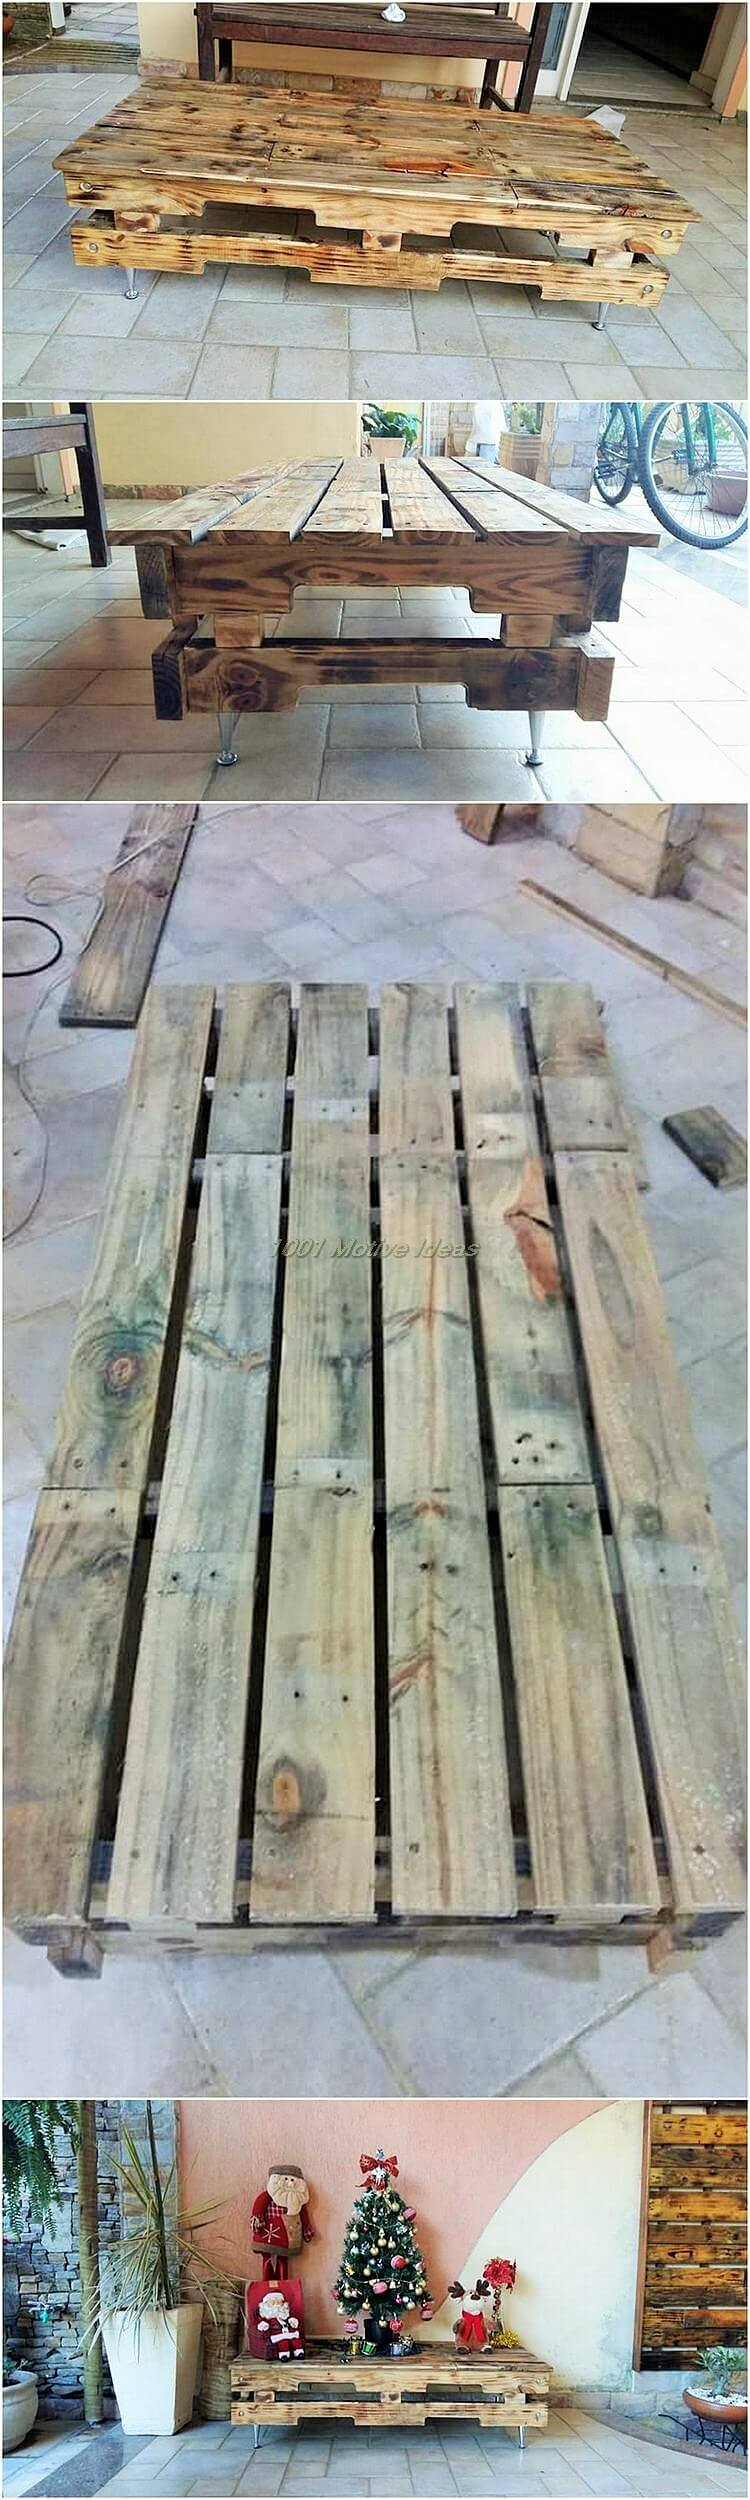 wooden-Pallet-furniture-Project-Ideas-007